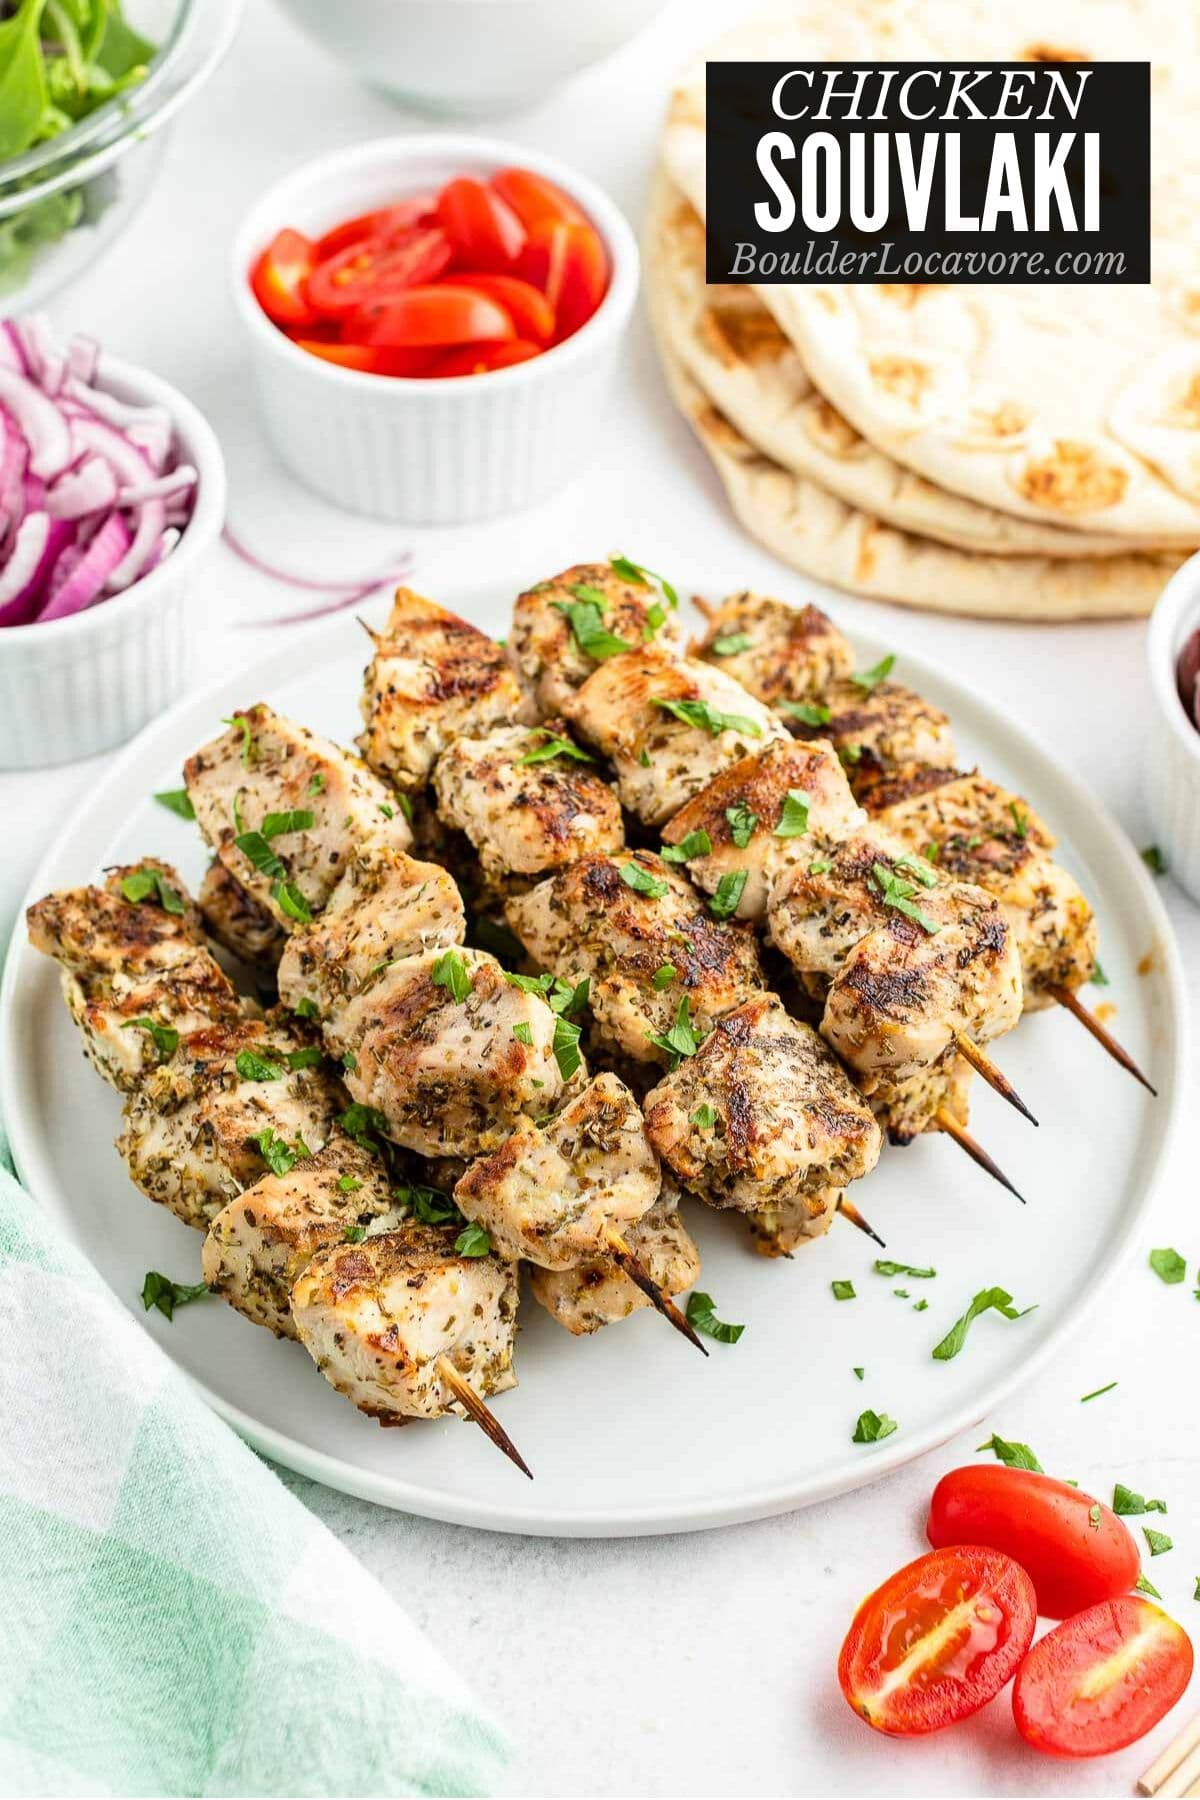 Easy Chicken Souvlaki Recipe Grilled Or Broiled Boulder Locavore